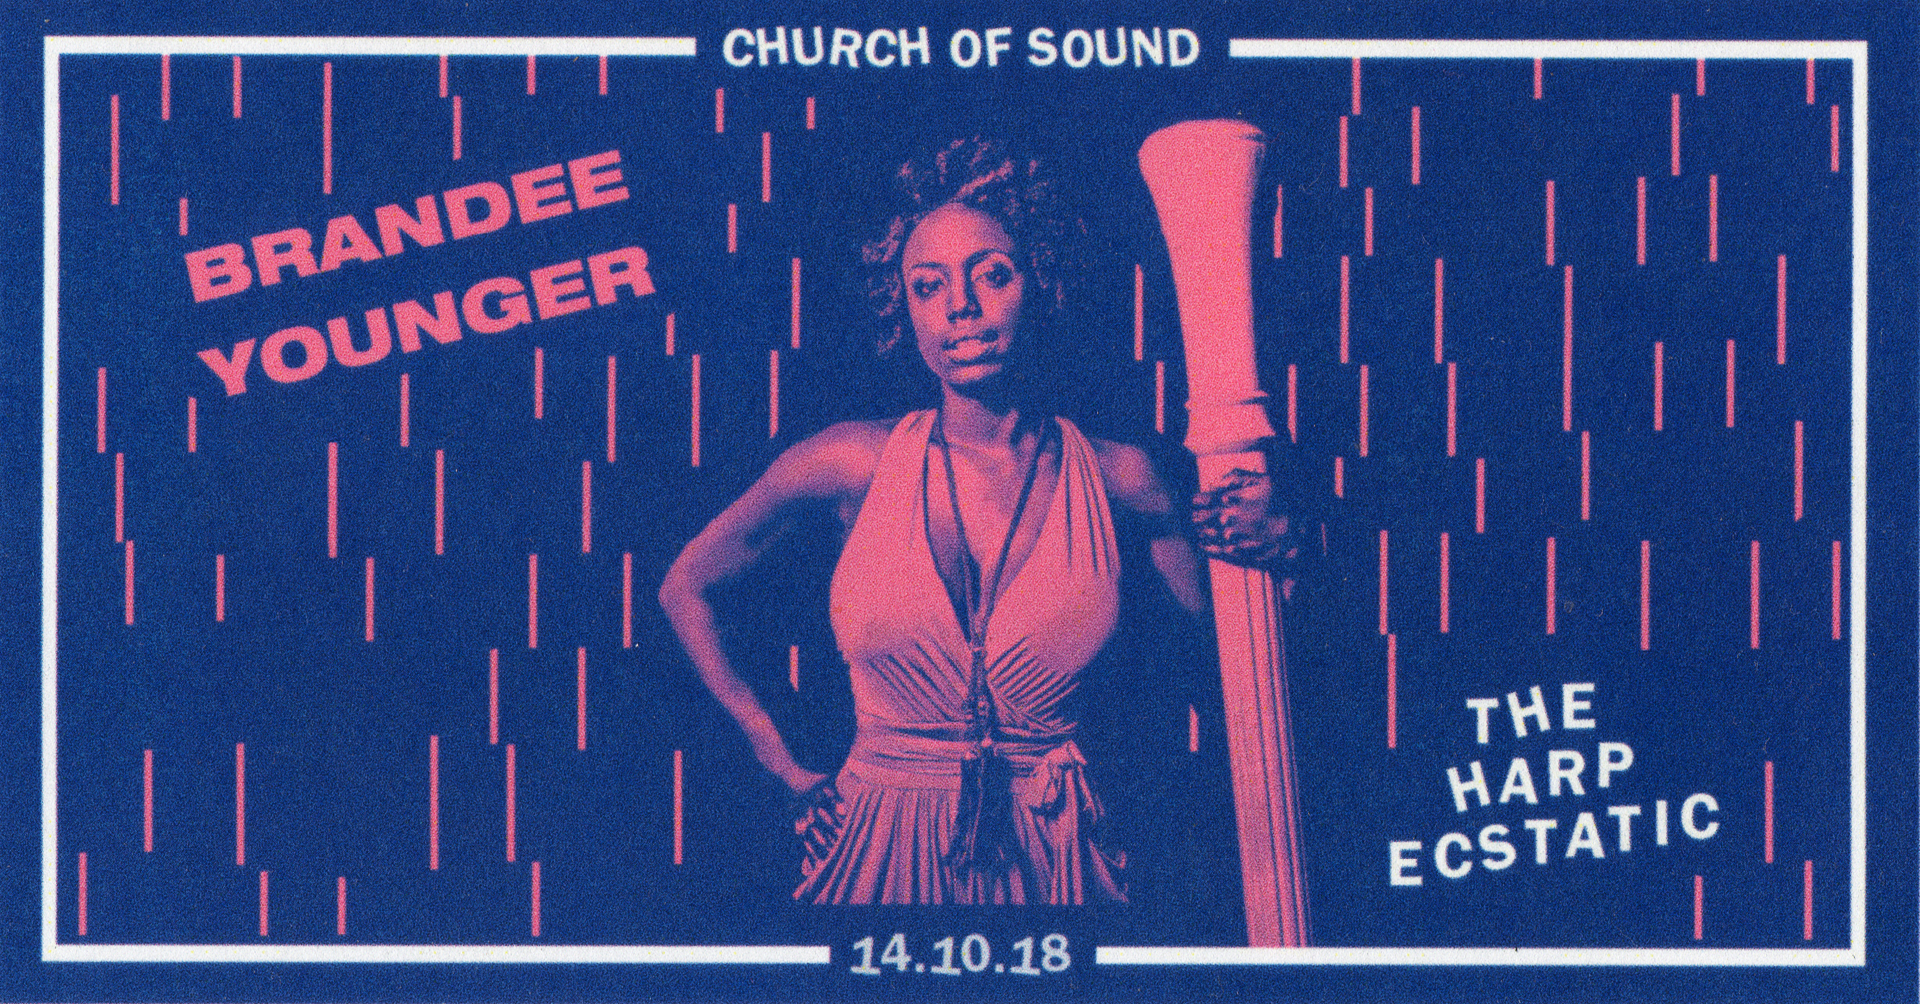 SPECIAL ANNOUNCEMENT: Brandee Younger Announces Performance at Church of Sound, London